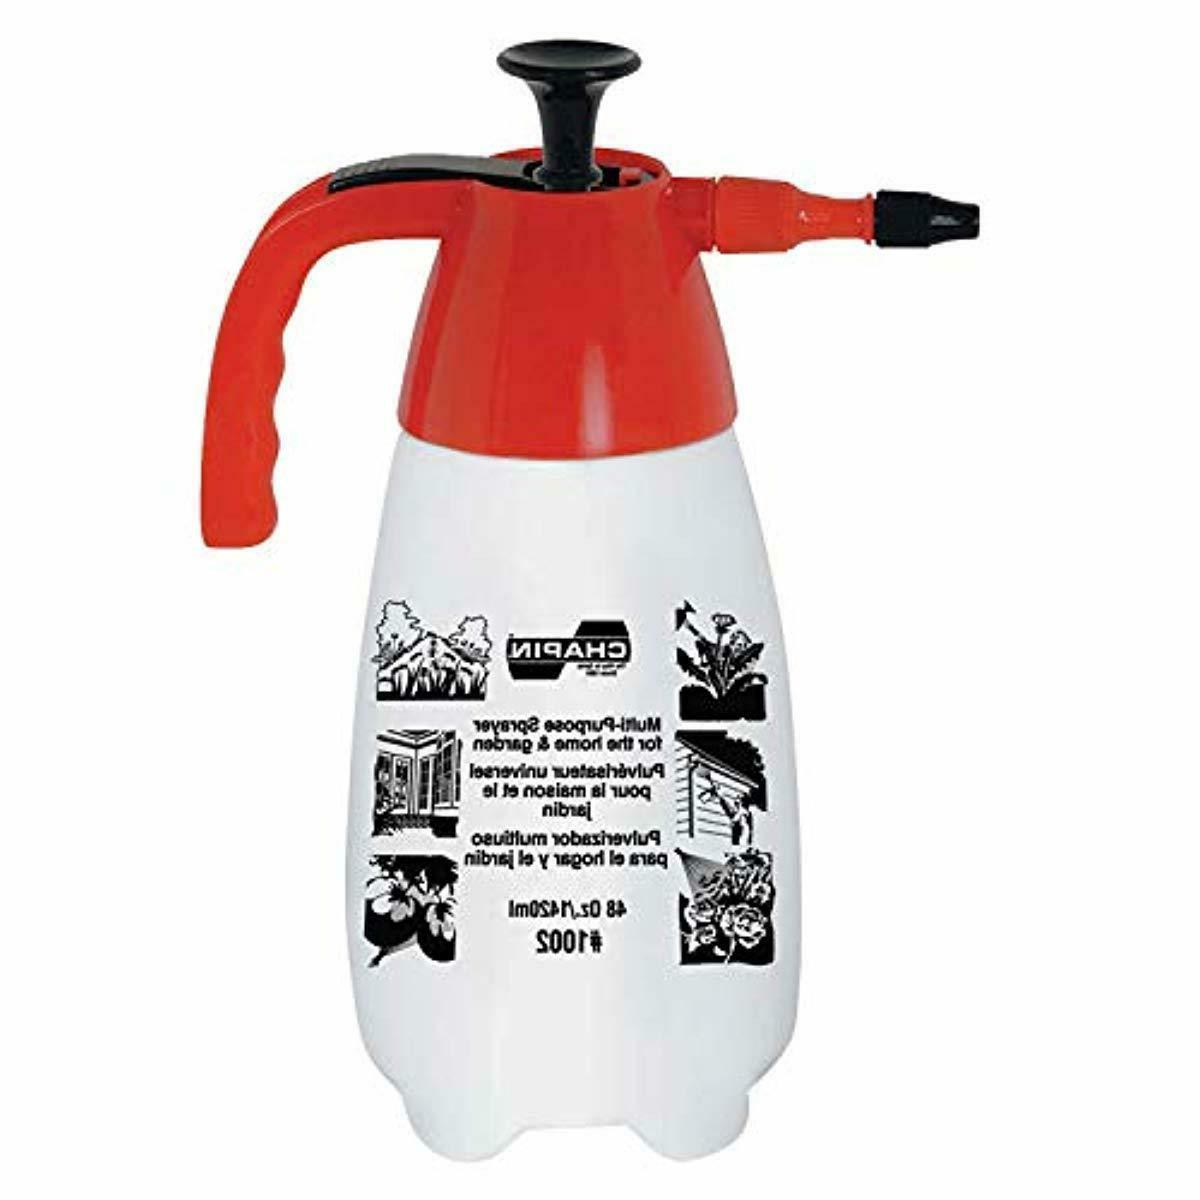 pressurized spray bottle hand held pump pressure